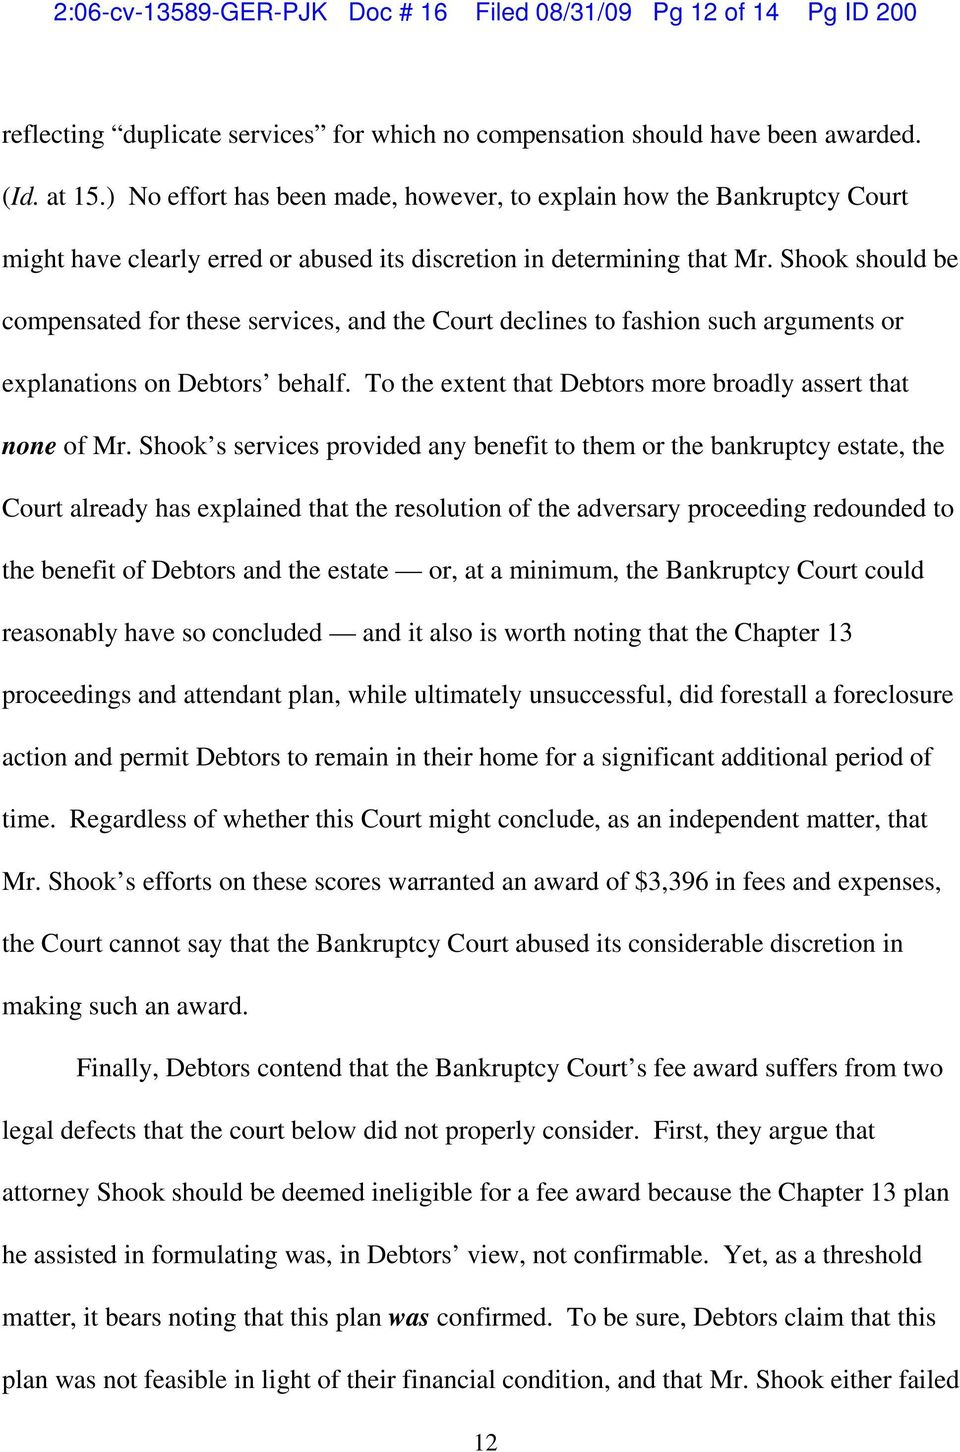 Shook should be compensated for these services, and the Court declines to fashion such arguments or explanations on Debtors behalf. To the extent that Debtors more broadly assert that none of Mr.